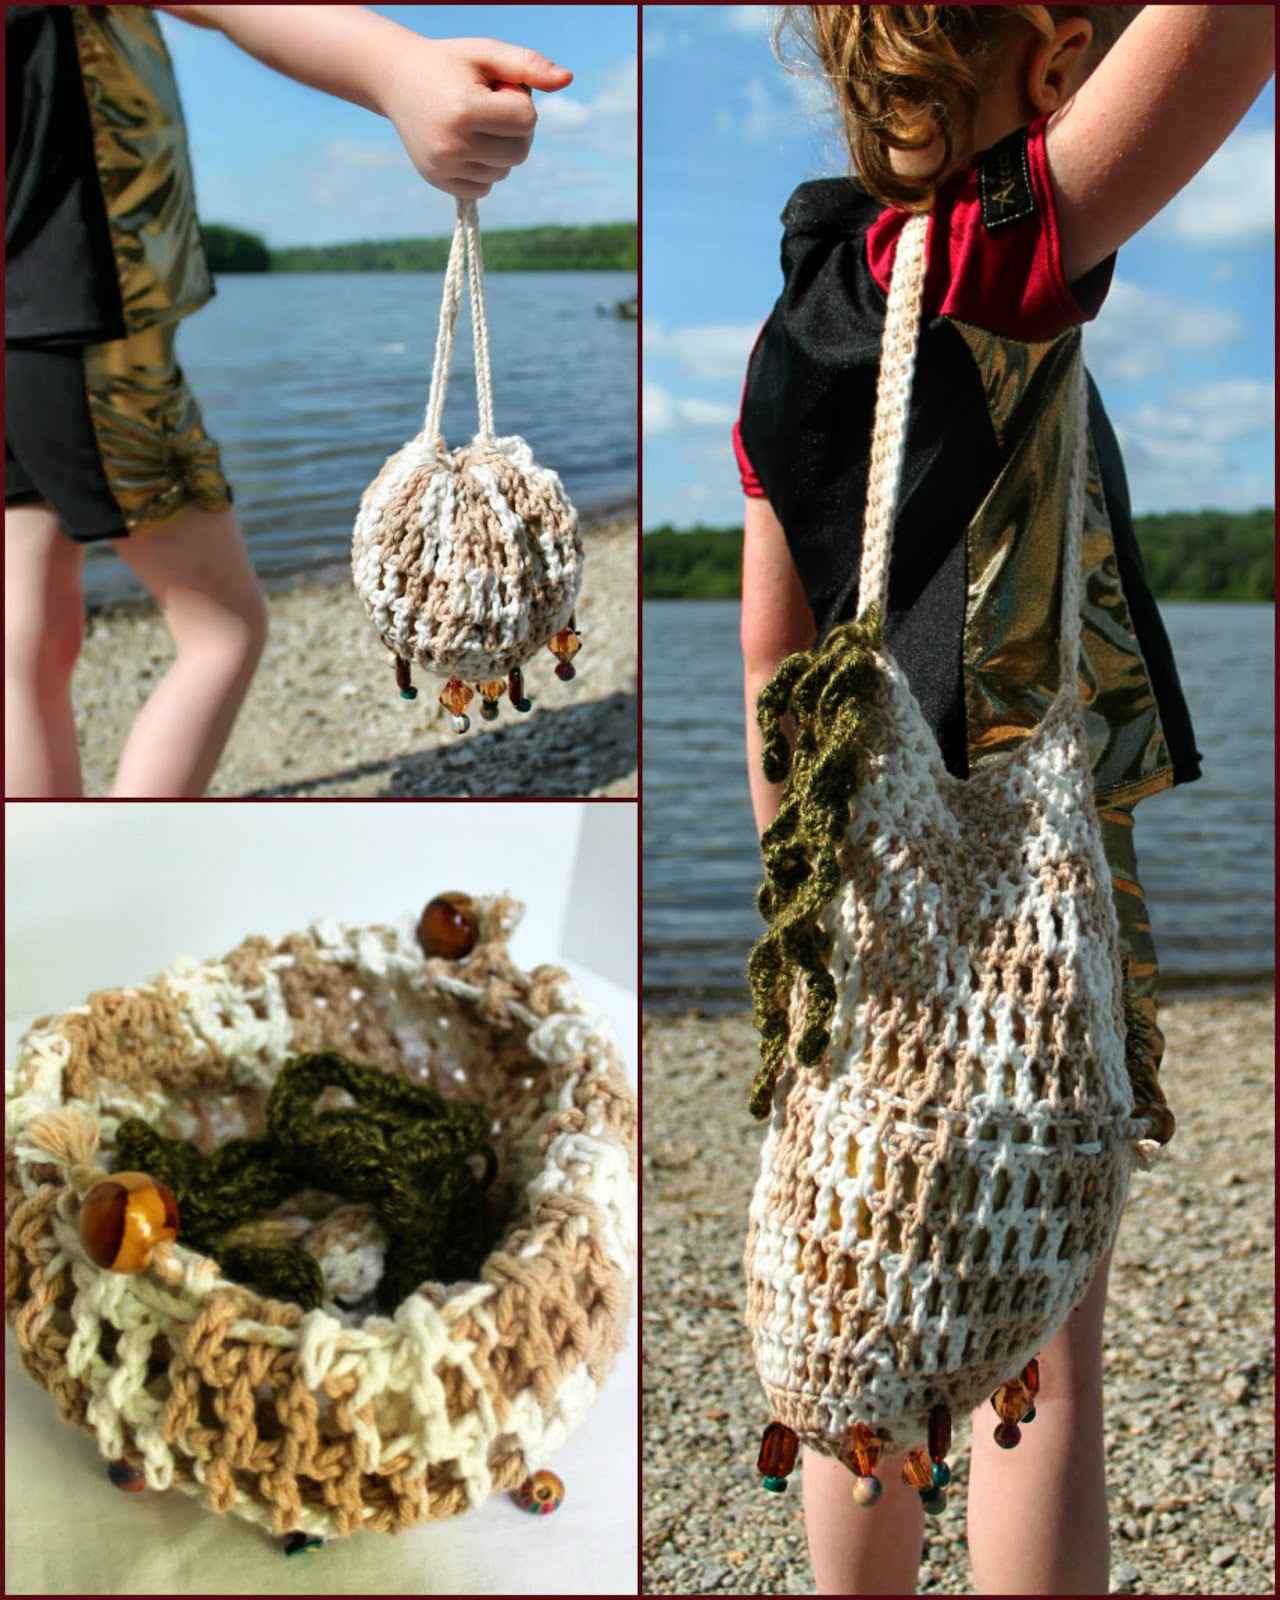 Harry Potter Triwizard Swimwear and Beaded Beach Bag | The Inspired Wren for CraftingCon